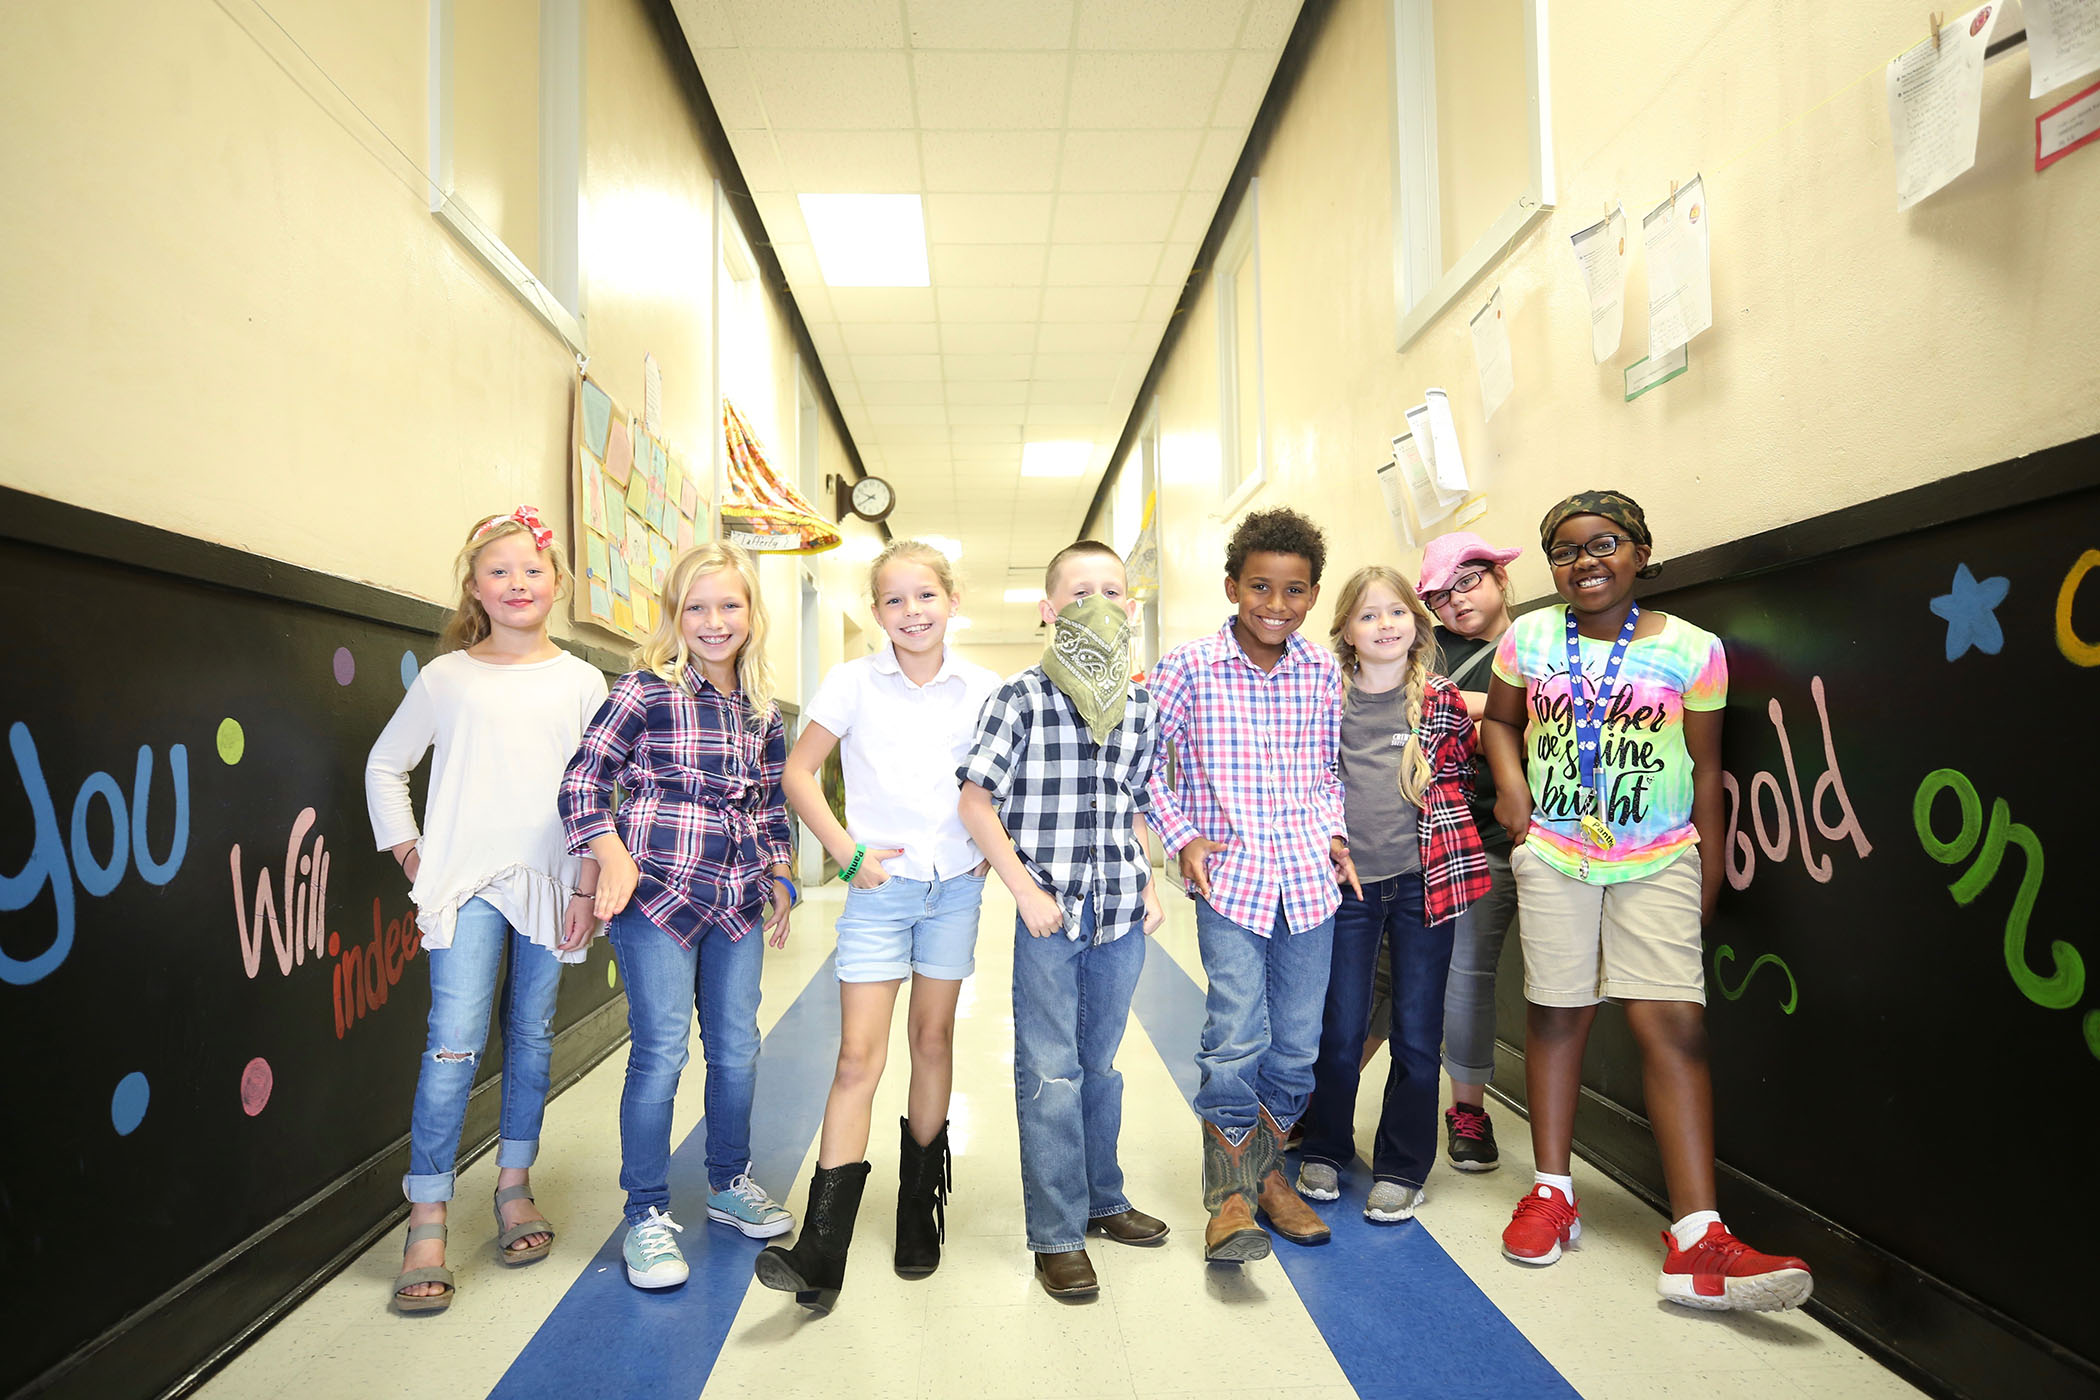 QUE students dress up as country and hip hop stars for Homecoming week.